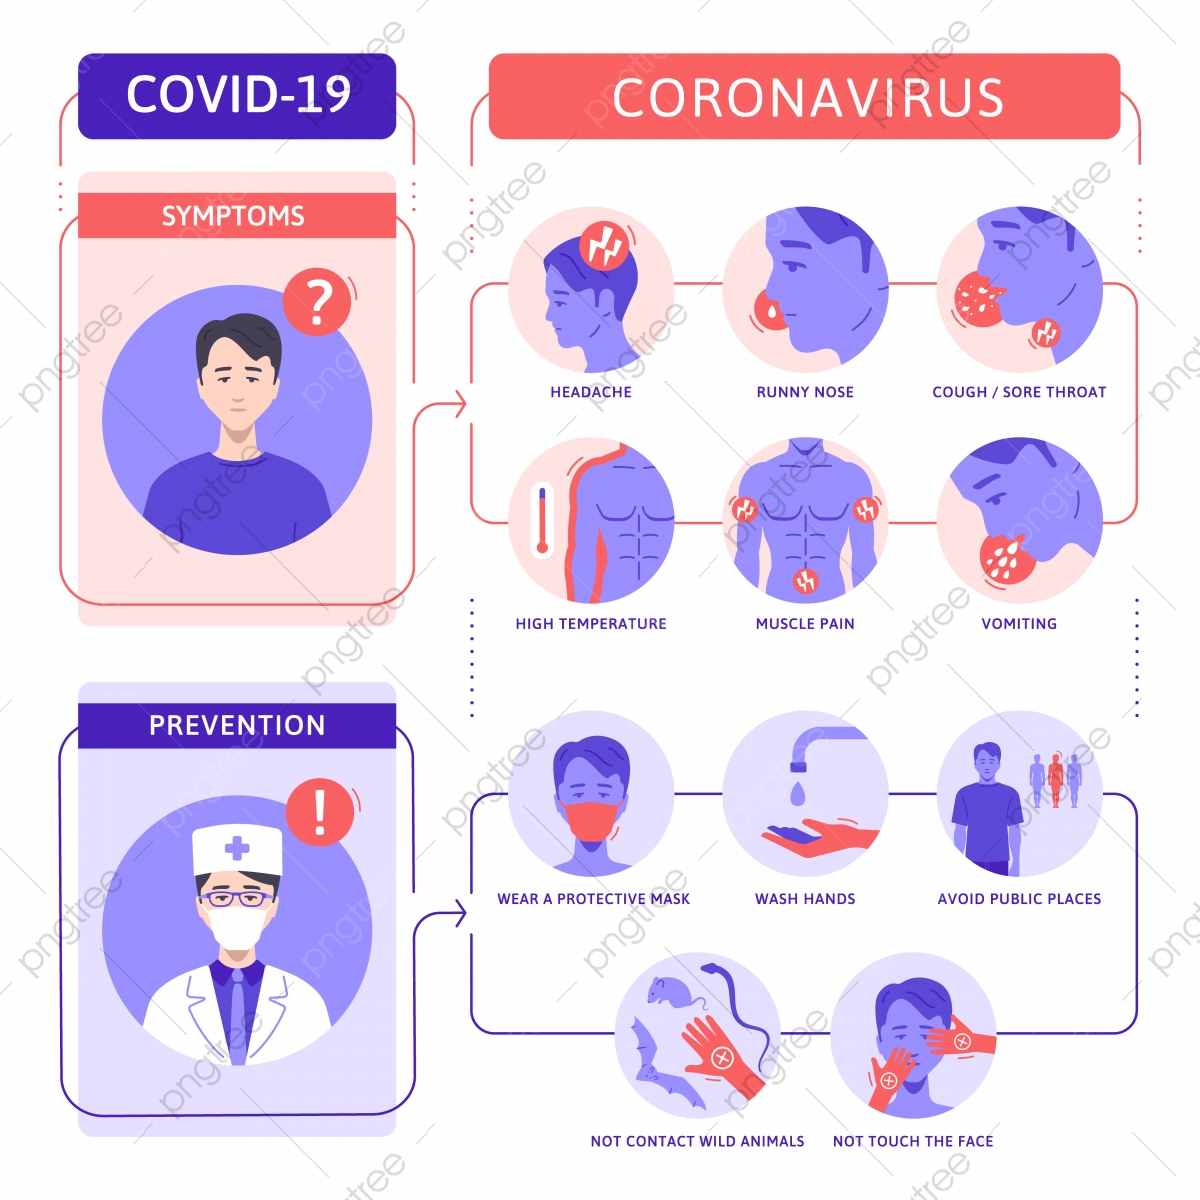 Corona Virus Symptoms Clipart